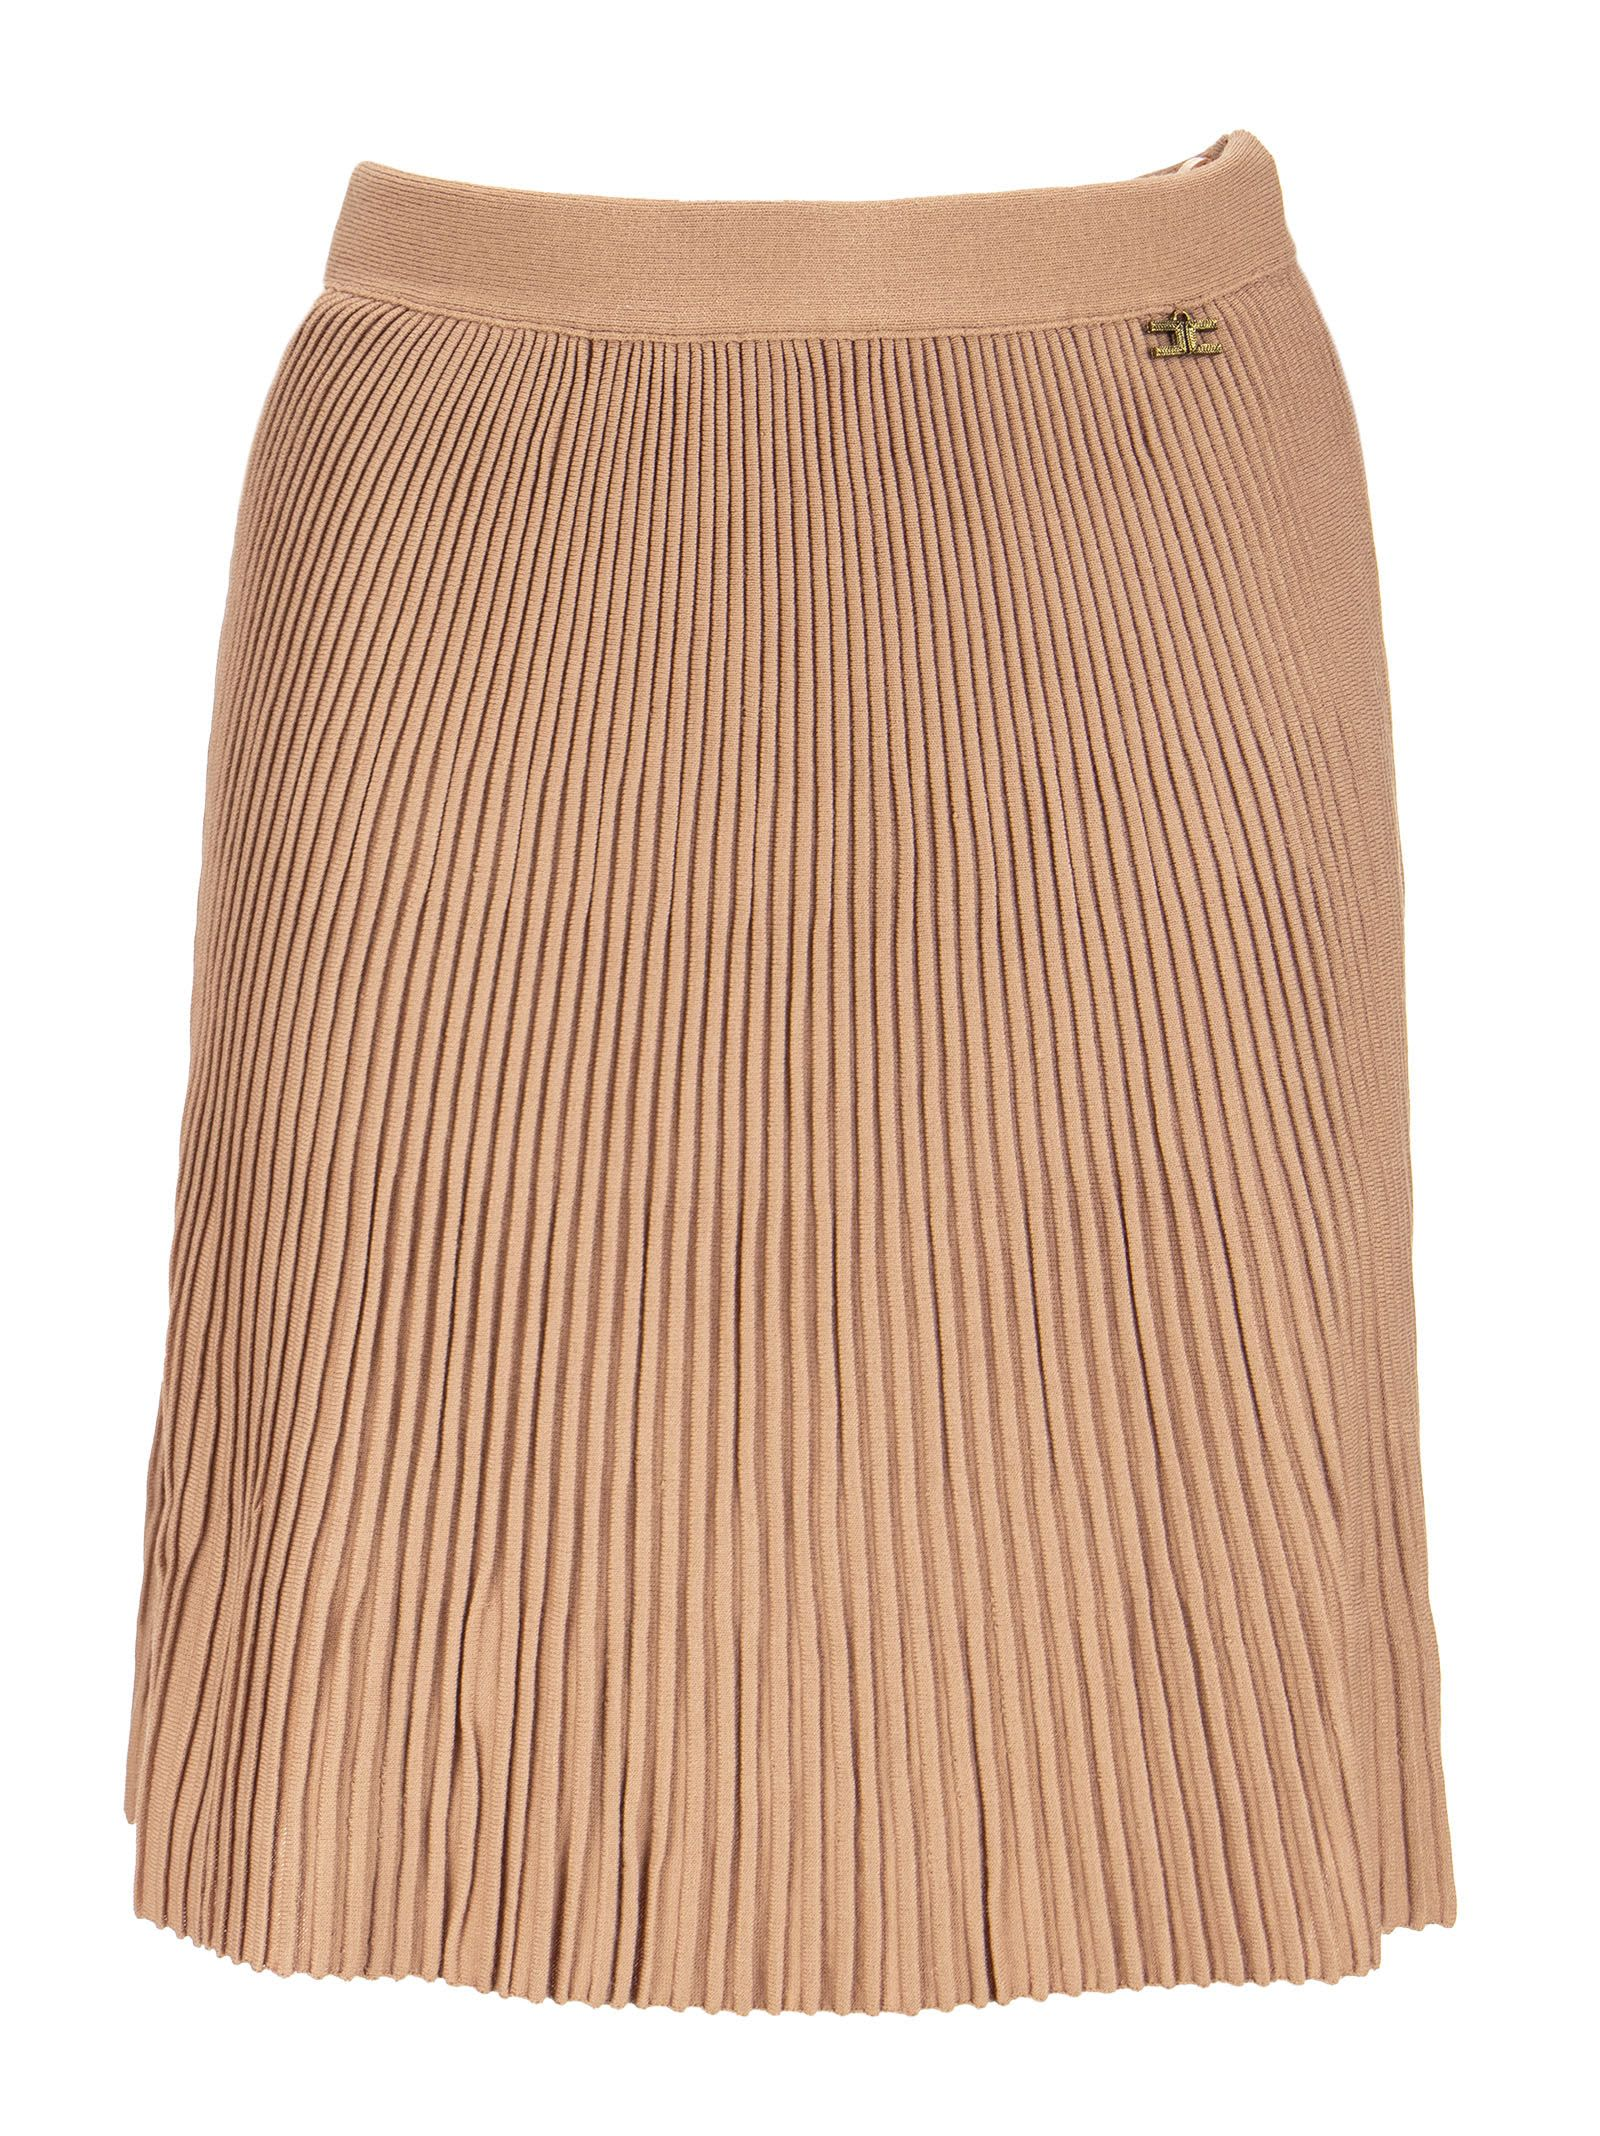 Elisabetta Franchi Pleated Knit Mini Skirt